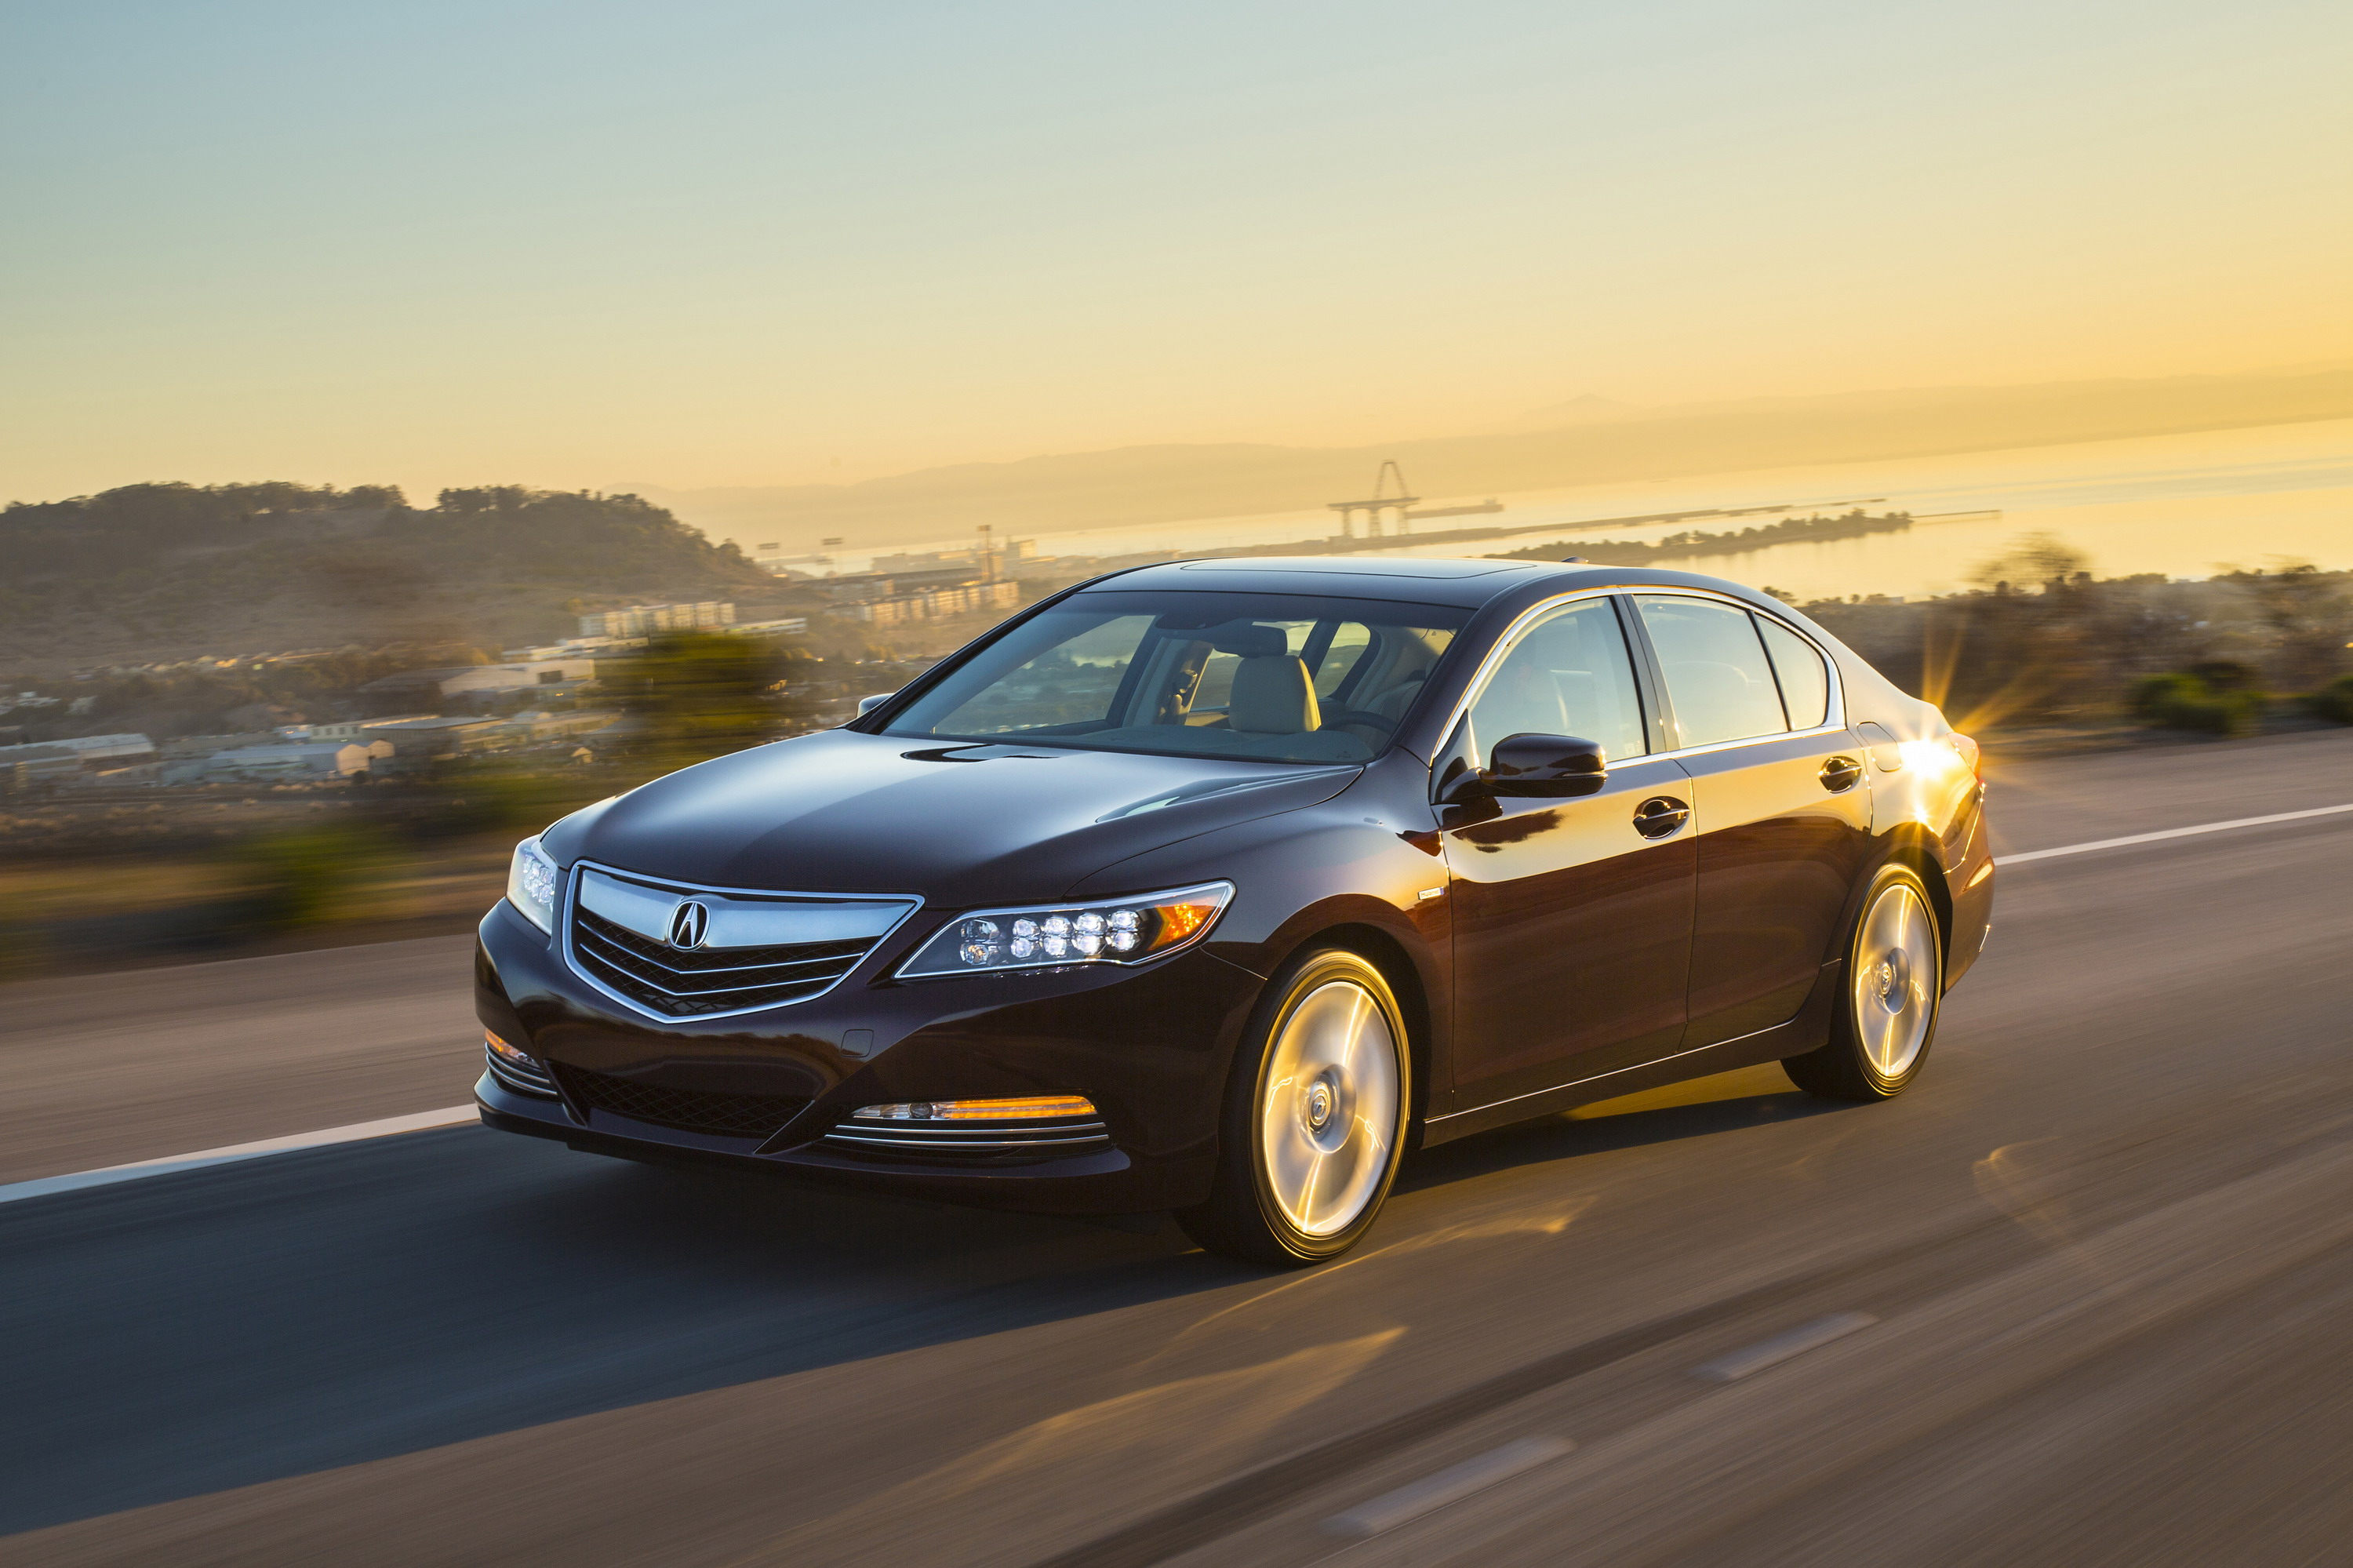 2014 acura rlx sport hybrid sh awd review top speed. Black Bedroom Furniture Sets. Home Design Ideas